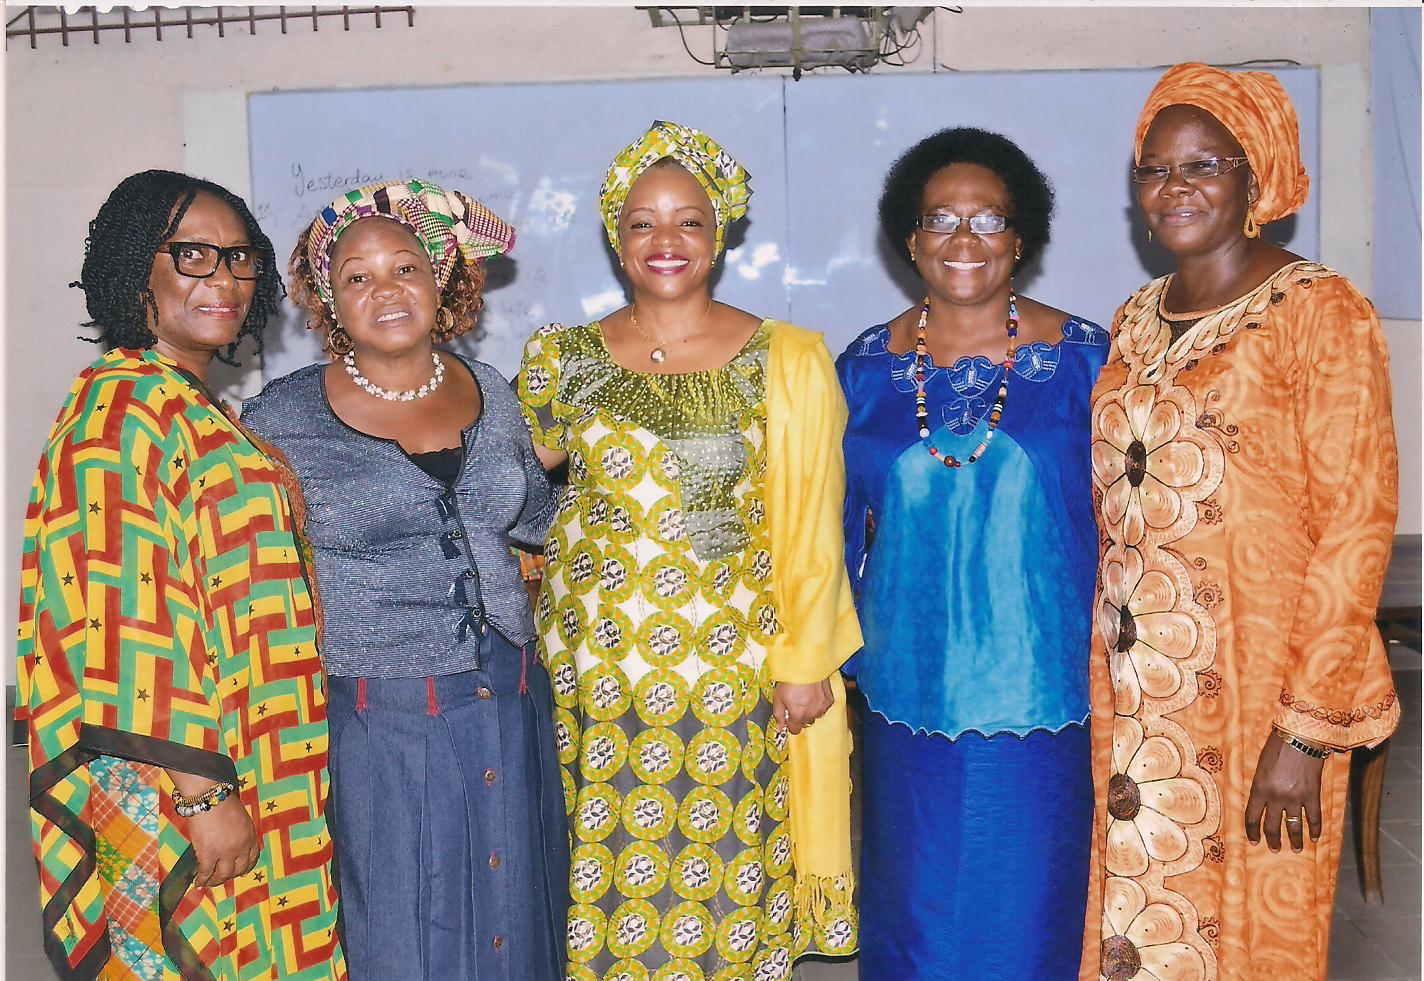 FRANCOPHONE AFRICA - Tirzah's leader in this region, Madeleine Gouentoueu, and her leadership team help to coordinate a consultation every two years for women leaders from 10-15 countries in Francophone Africa. They meet to address the needs of the women in their nations and discuss how they can influence their environments.